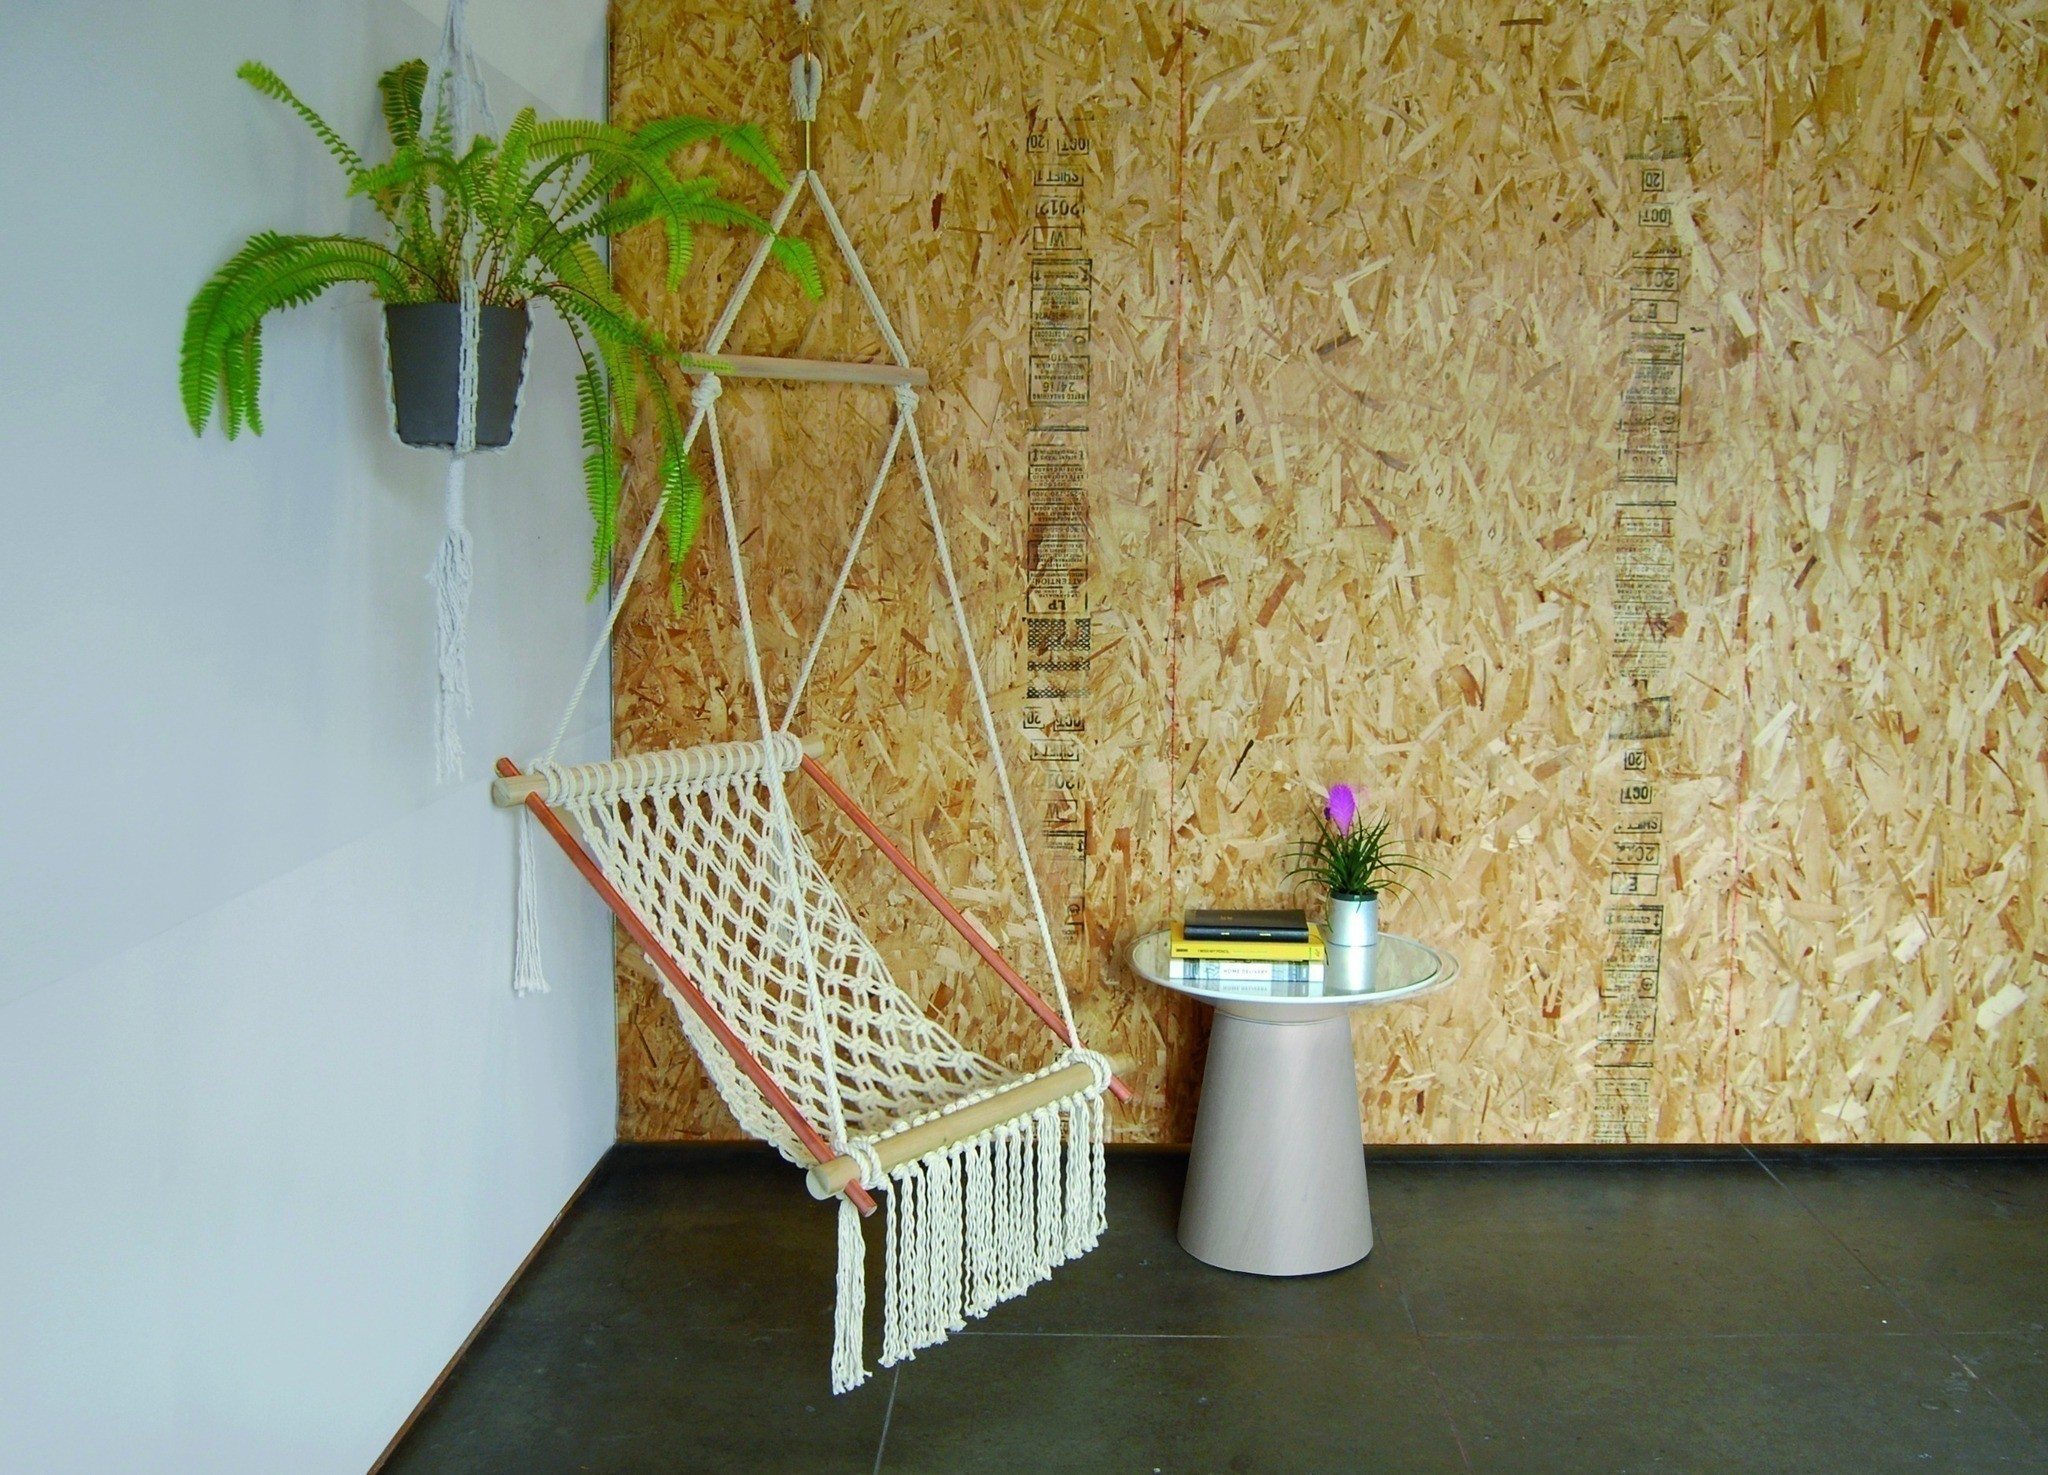 Hanging Chair Extract From Diy Furniture 2 By